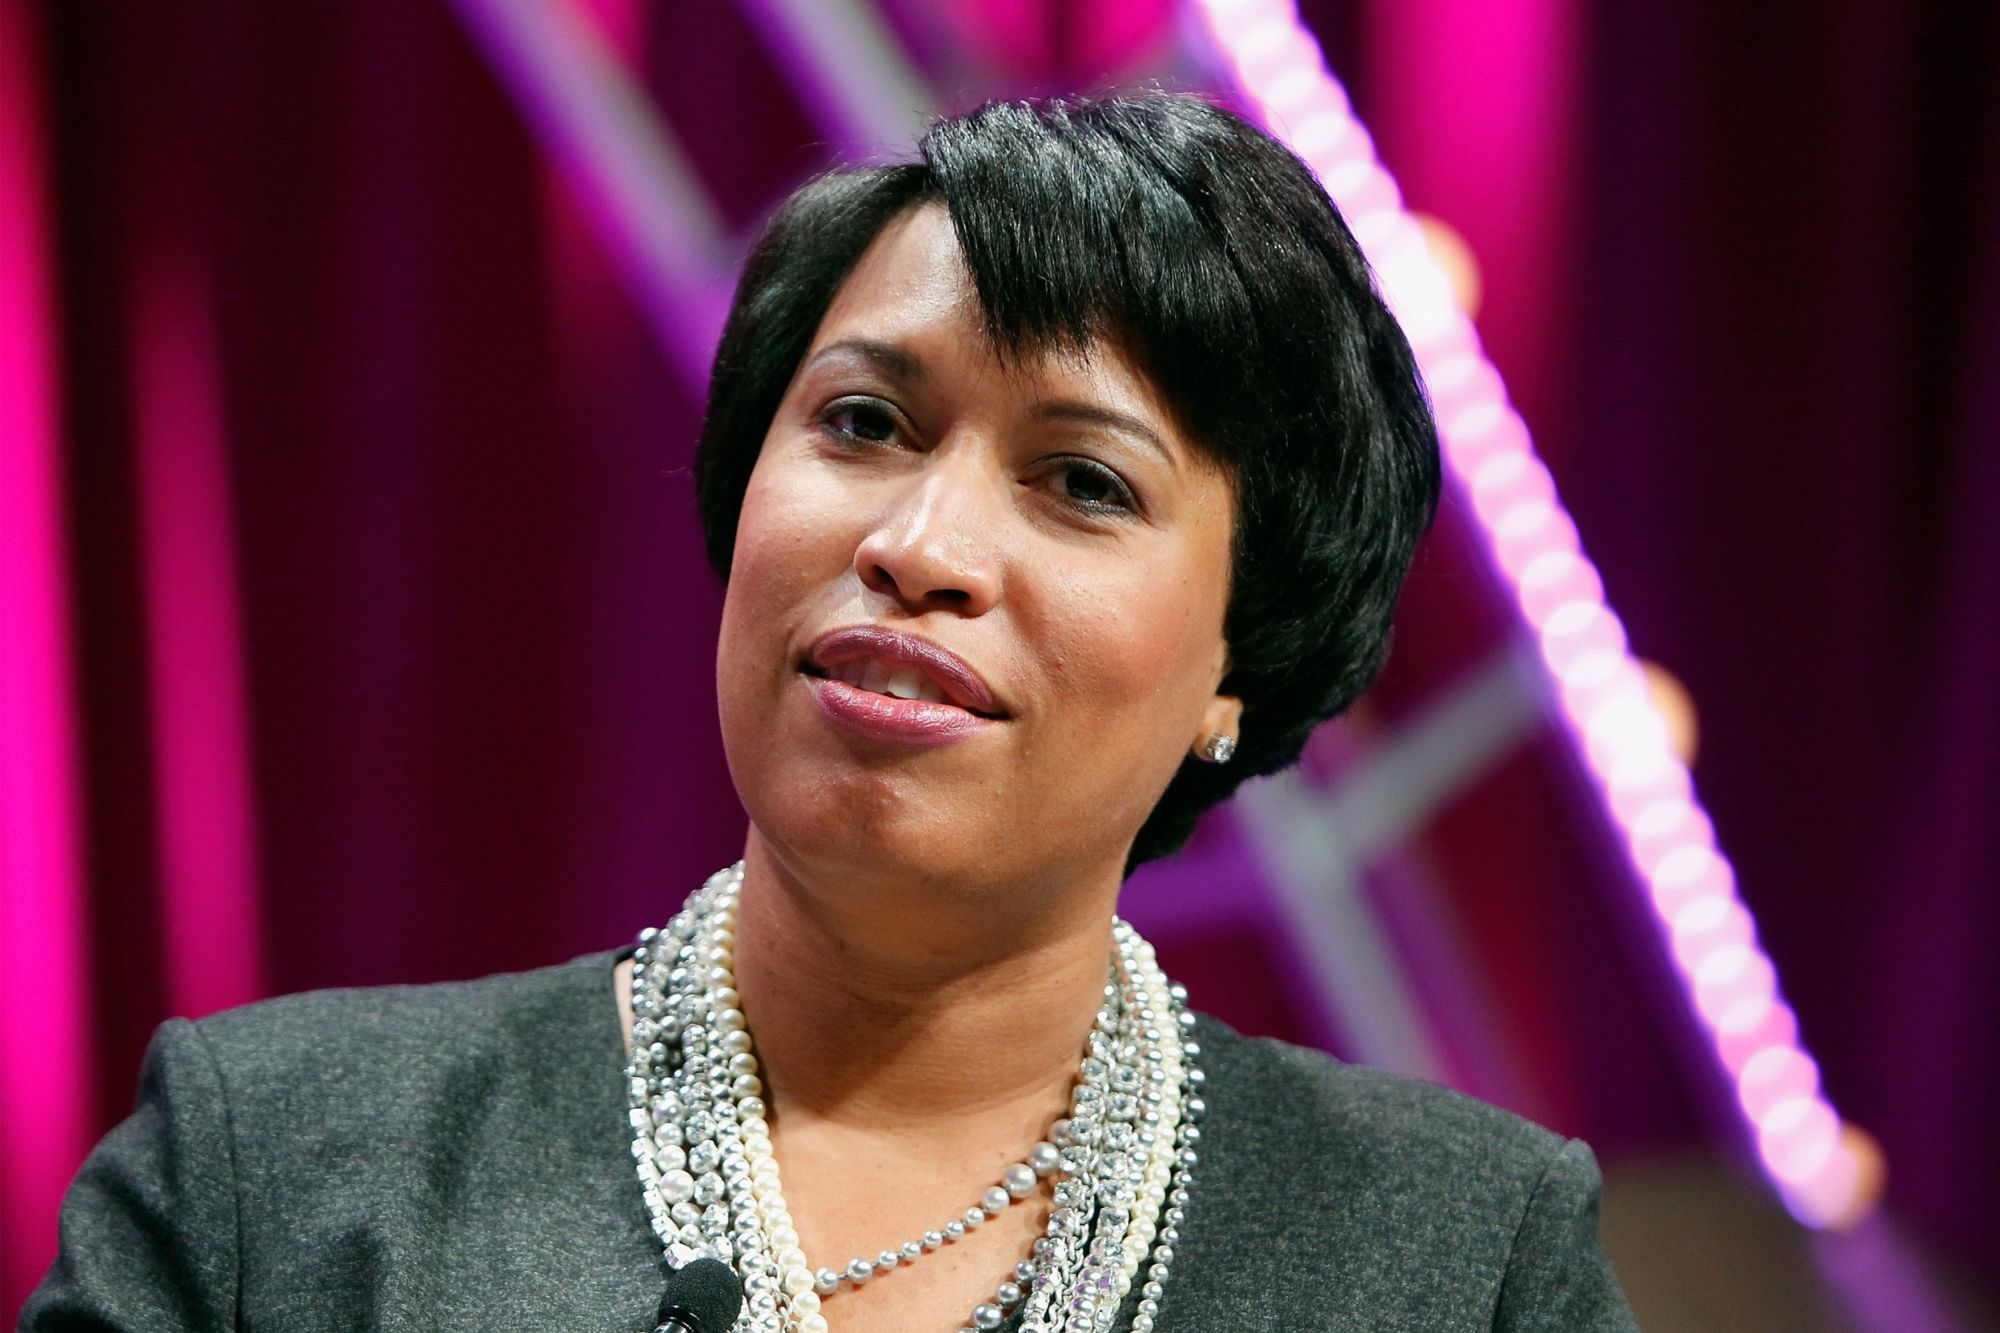 D.C. Mayor OKs Use Of Cannabis By City Workers When They Are Not On The Job